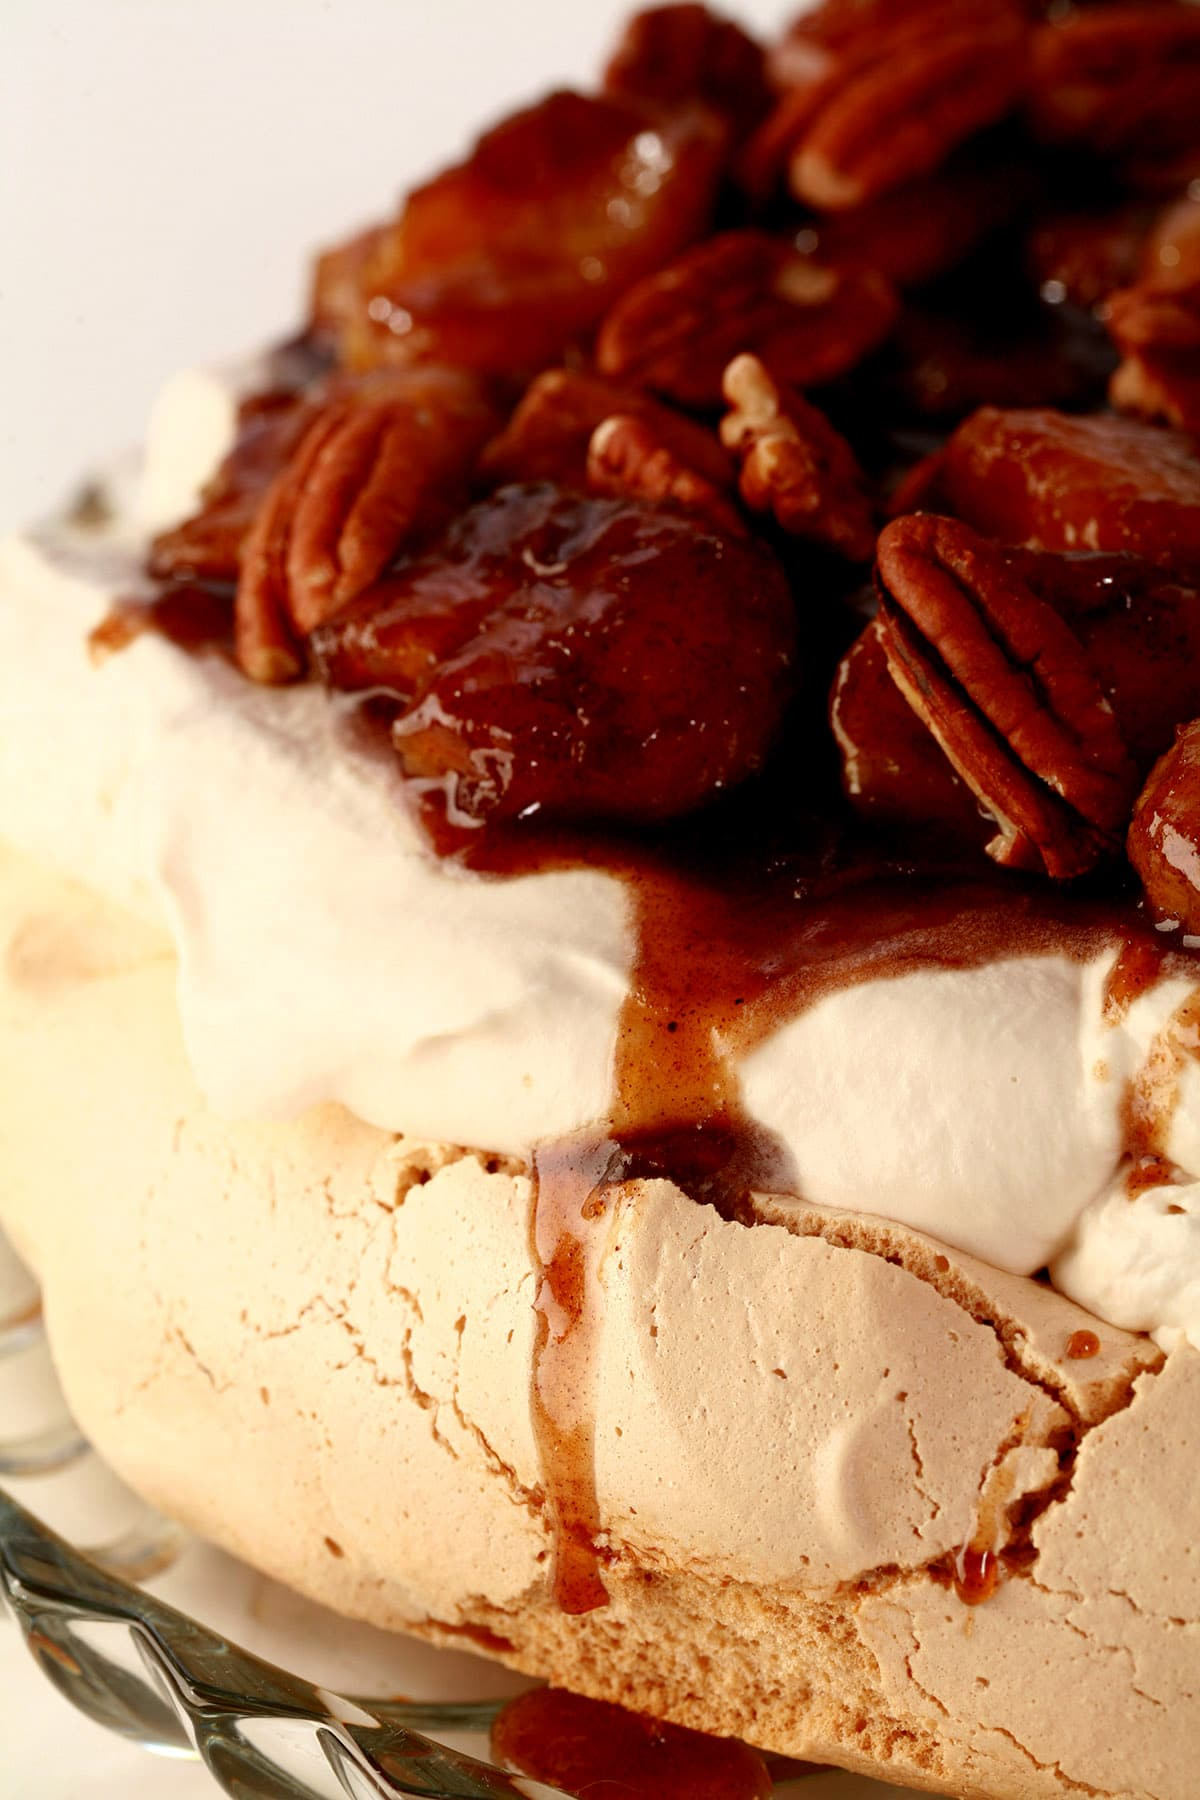 A very close up view of a brown sugar pavlova, topped with bananas foster.